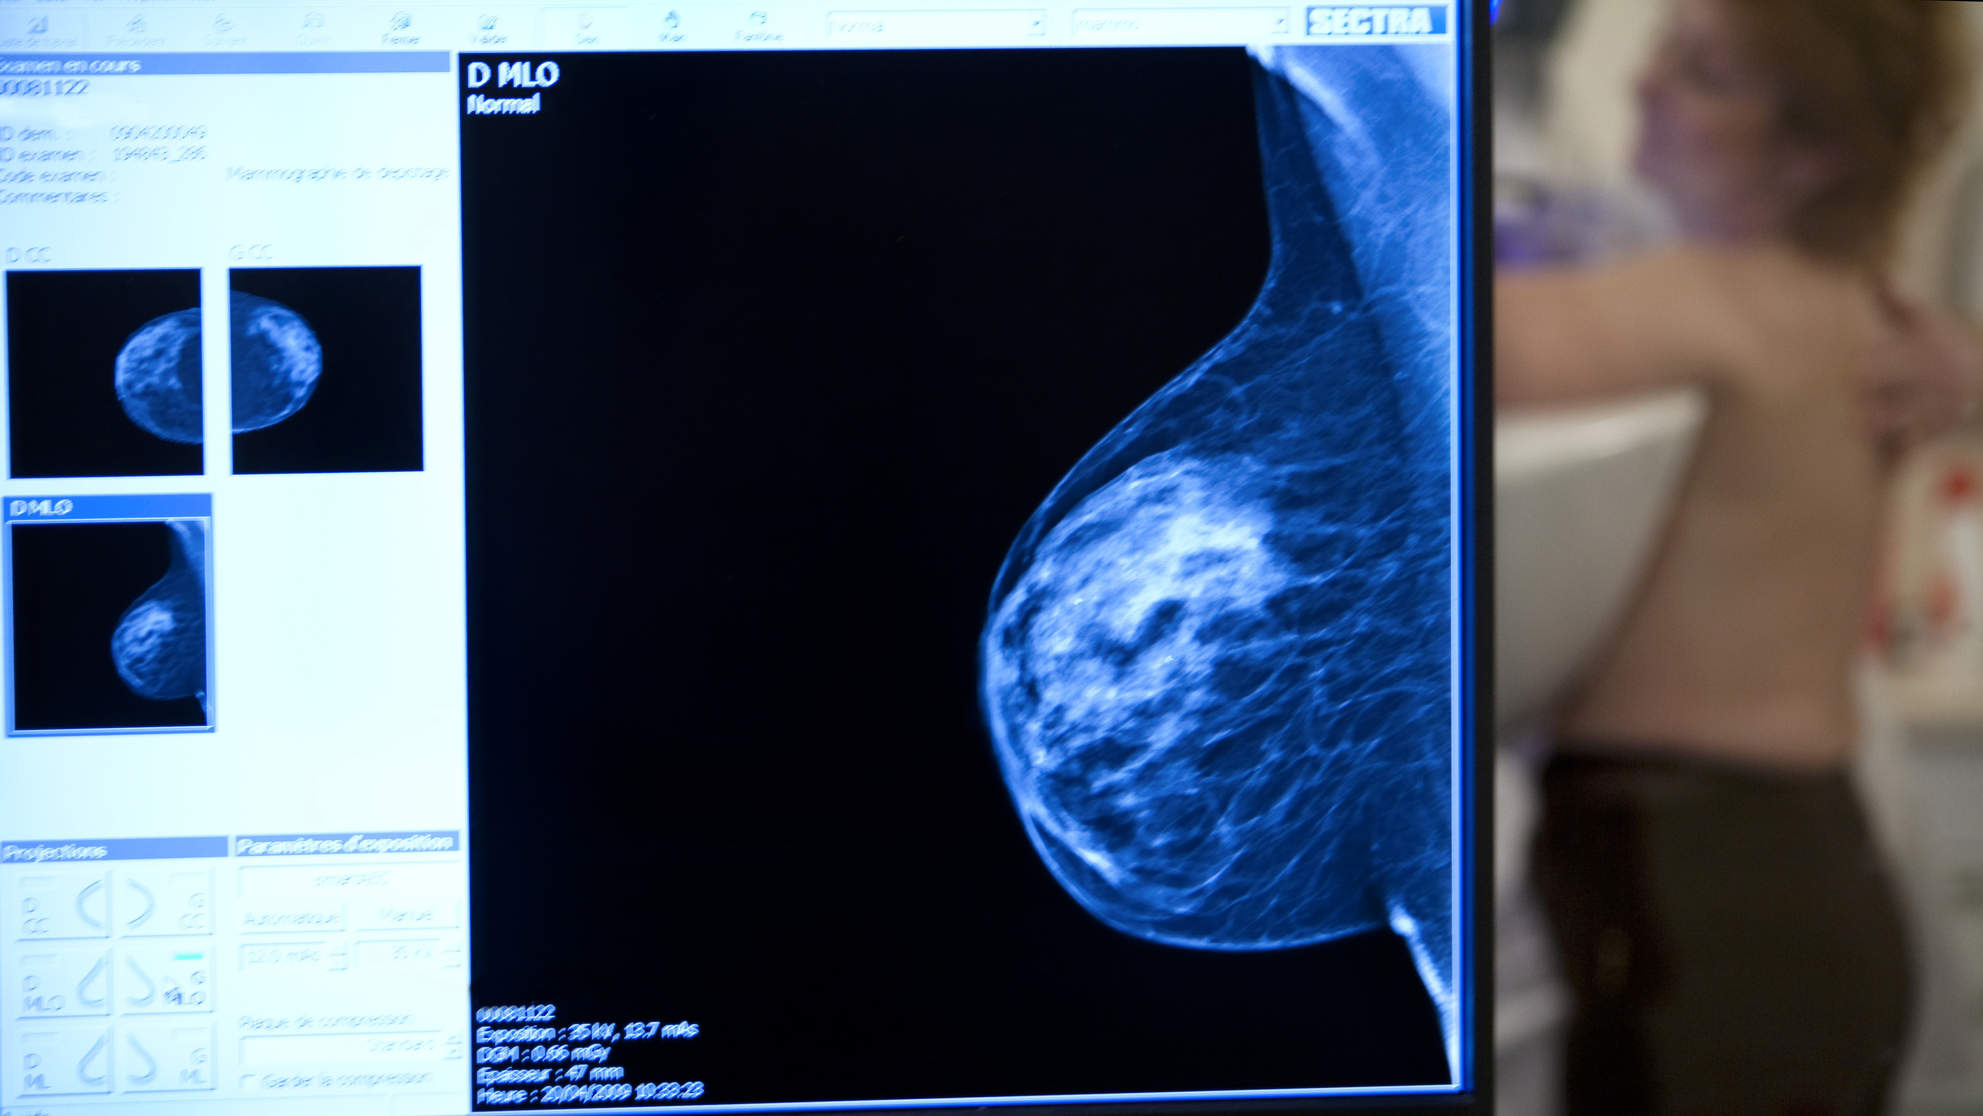 More Women With Breast Cancer May Soon Be Skipping Chemo. Here's Why